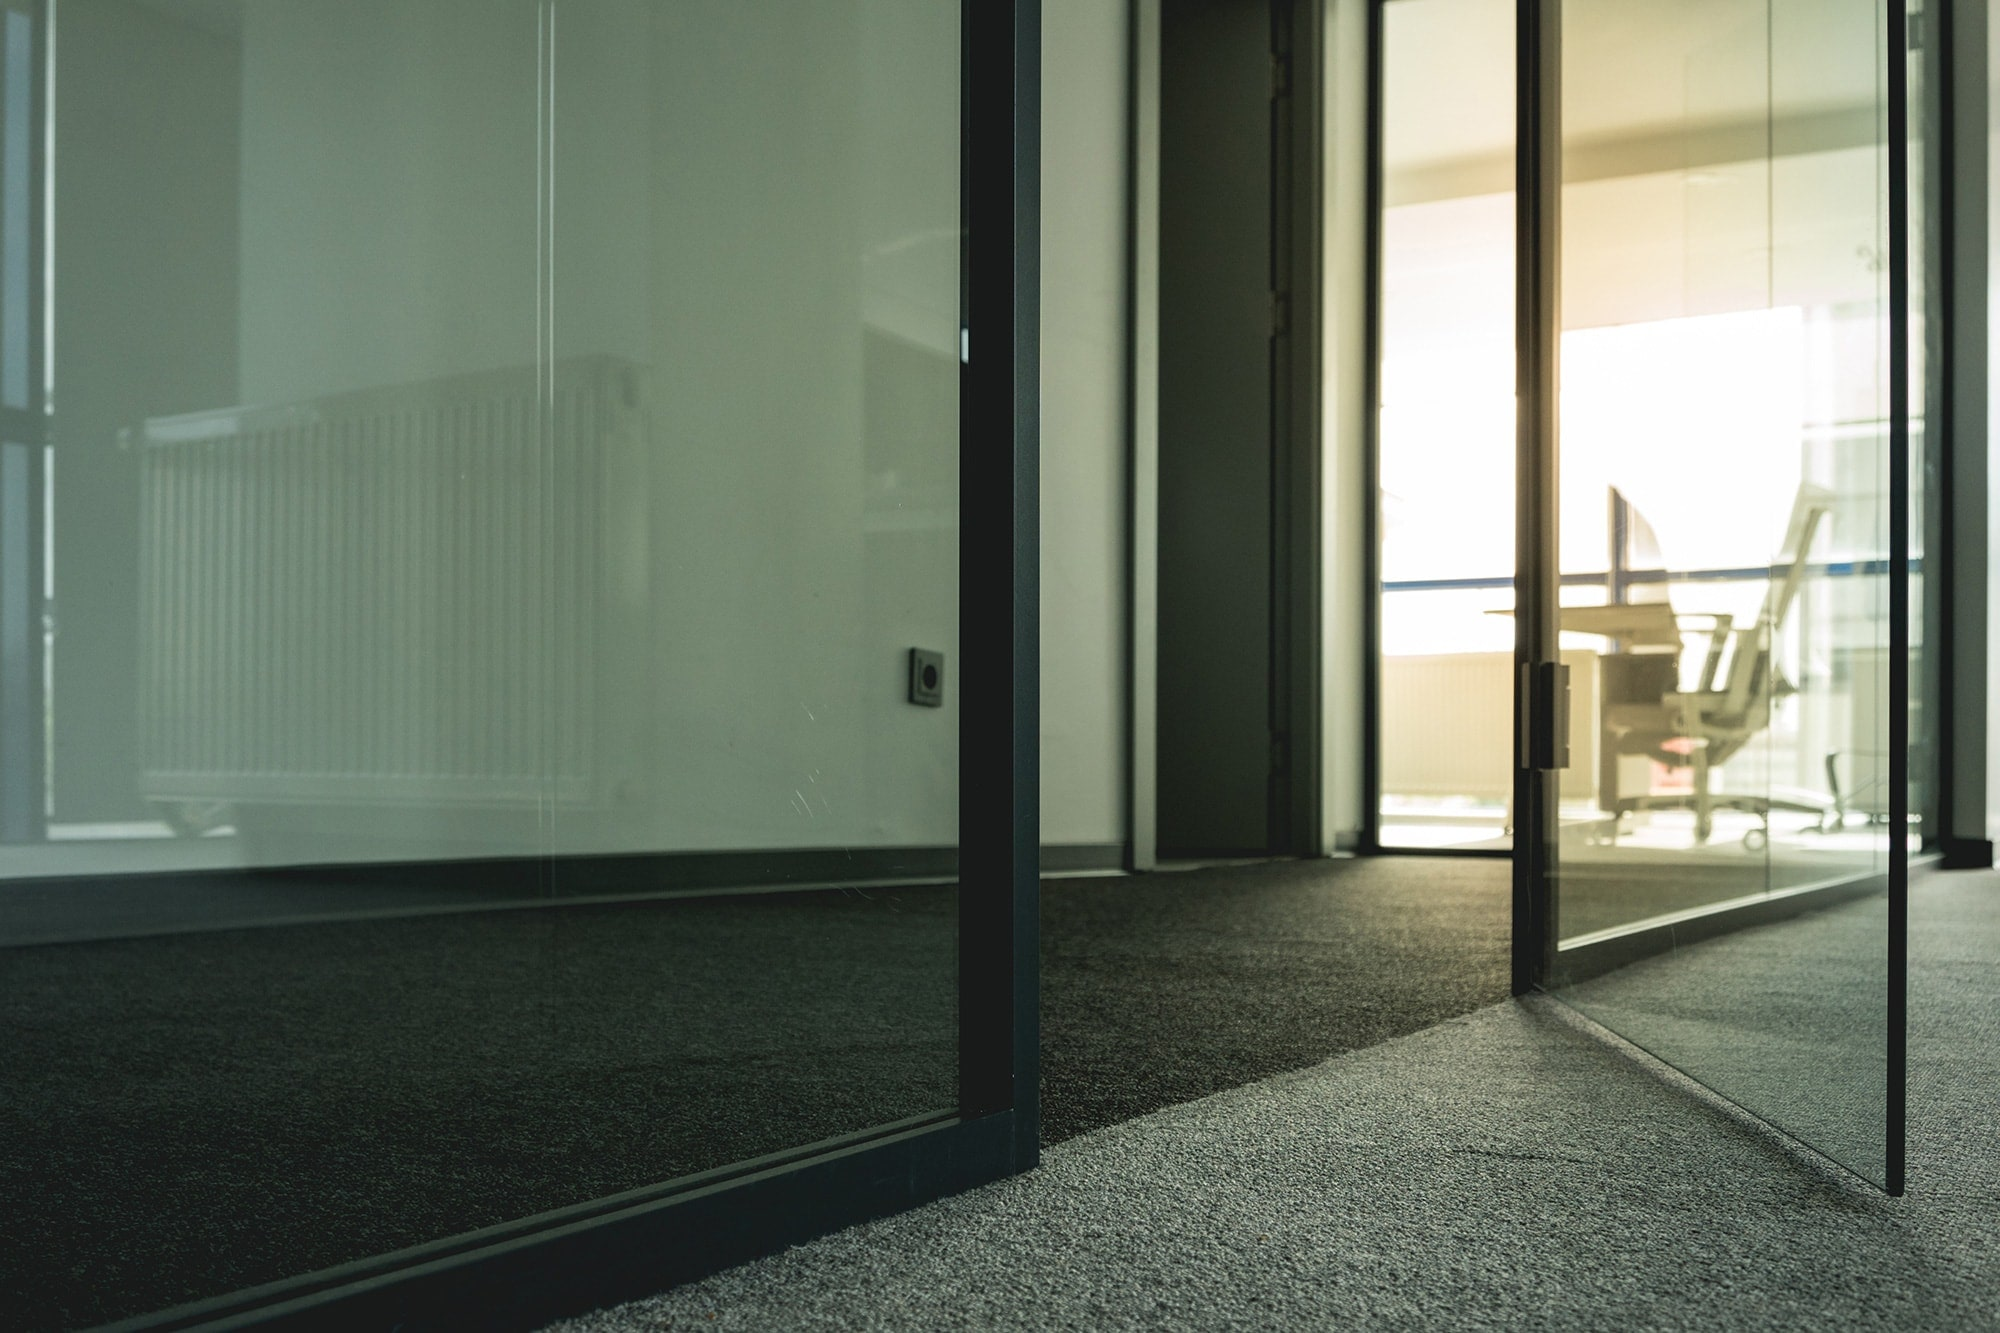 Glass partitioning door looking in to an office